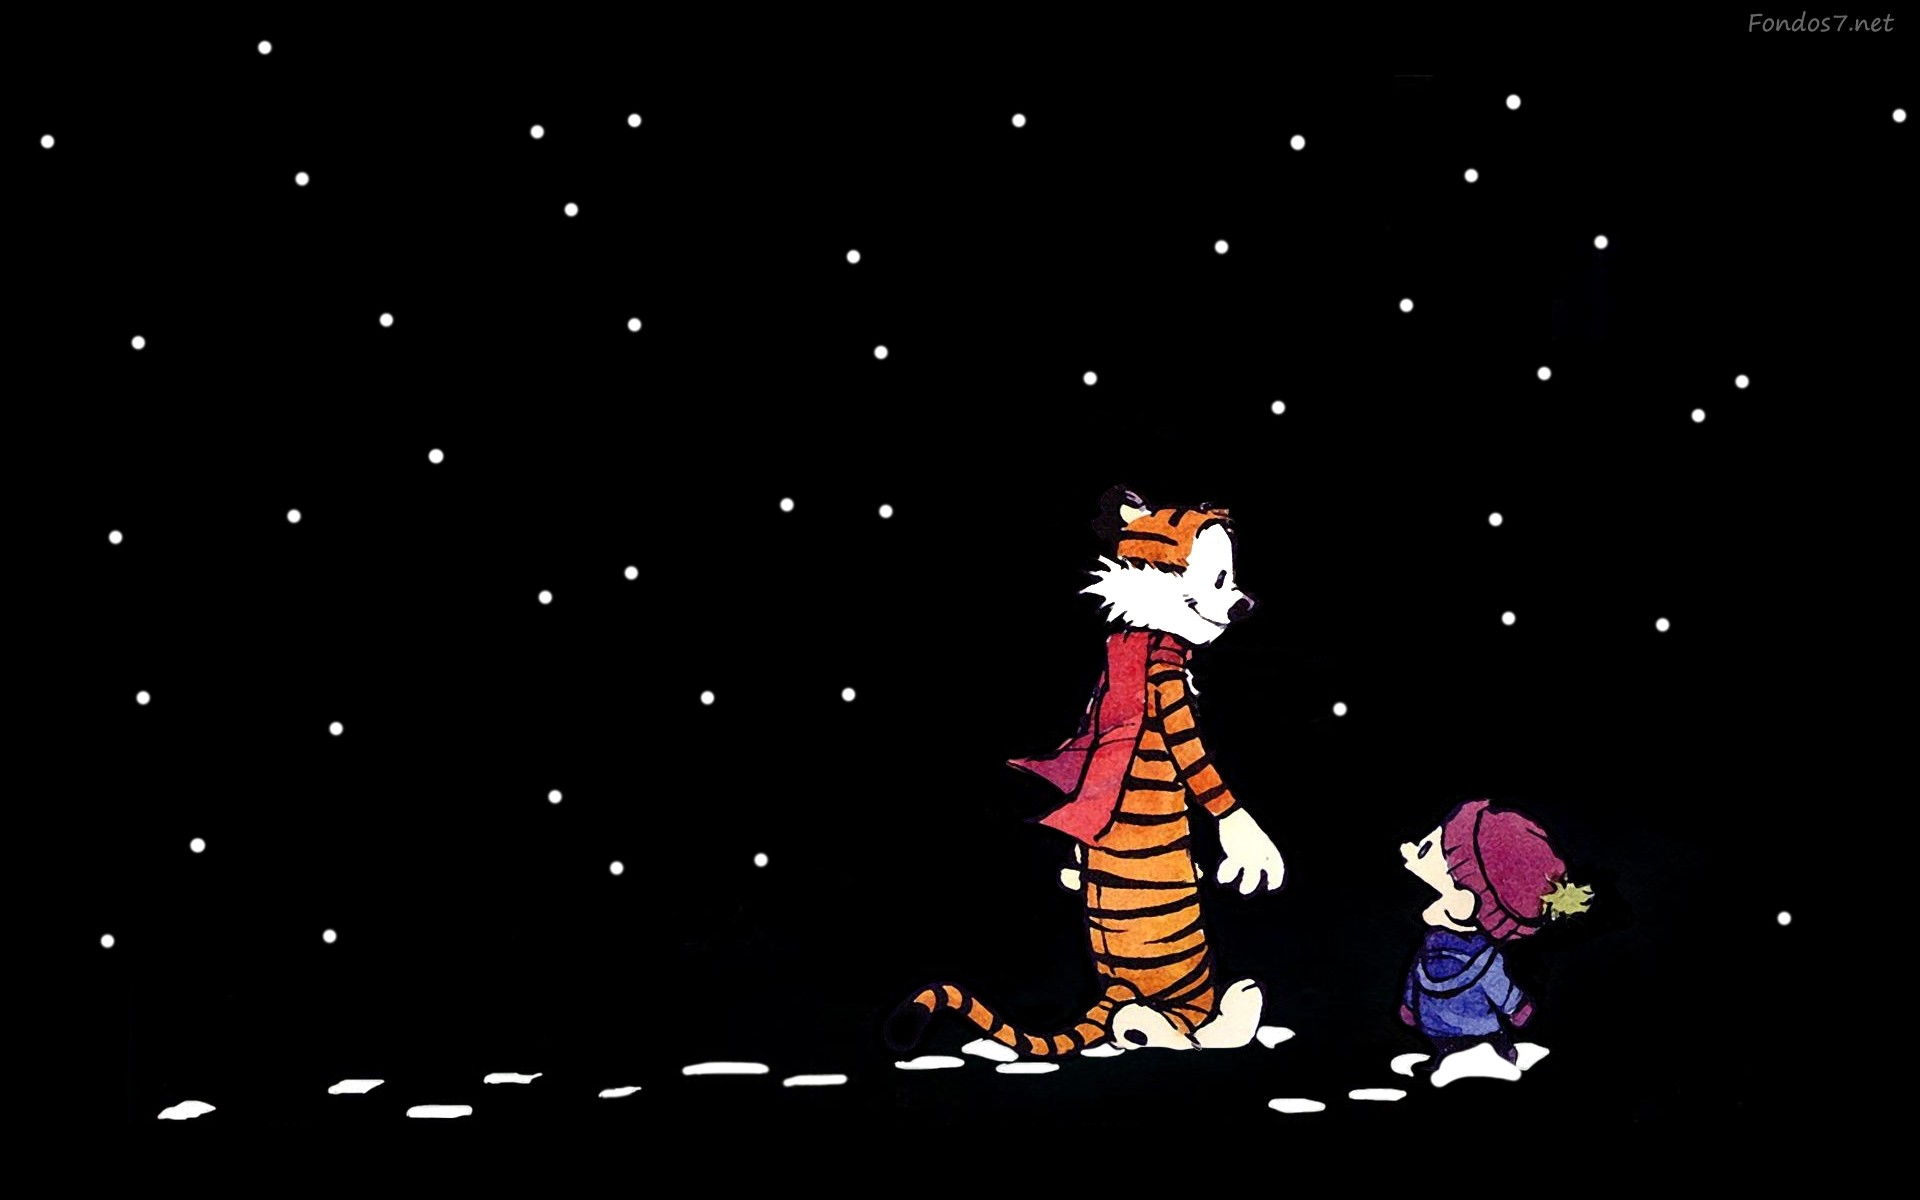 1920x1200 Calvin Hobbes Descargar Fondos De Pantalla Gratis #wallpapers #widescreen